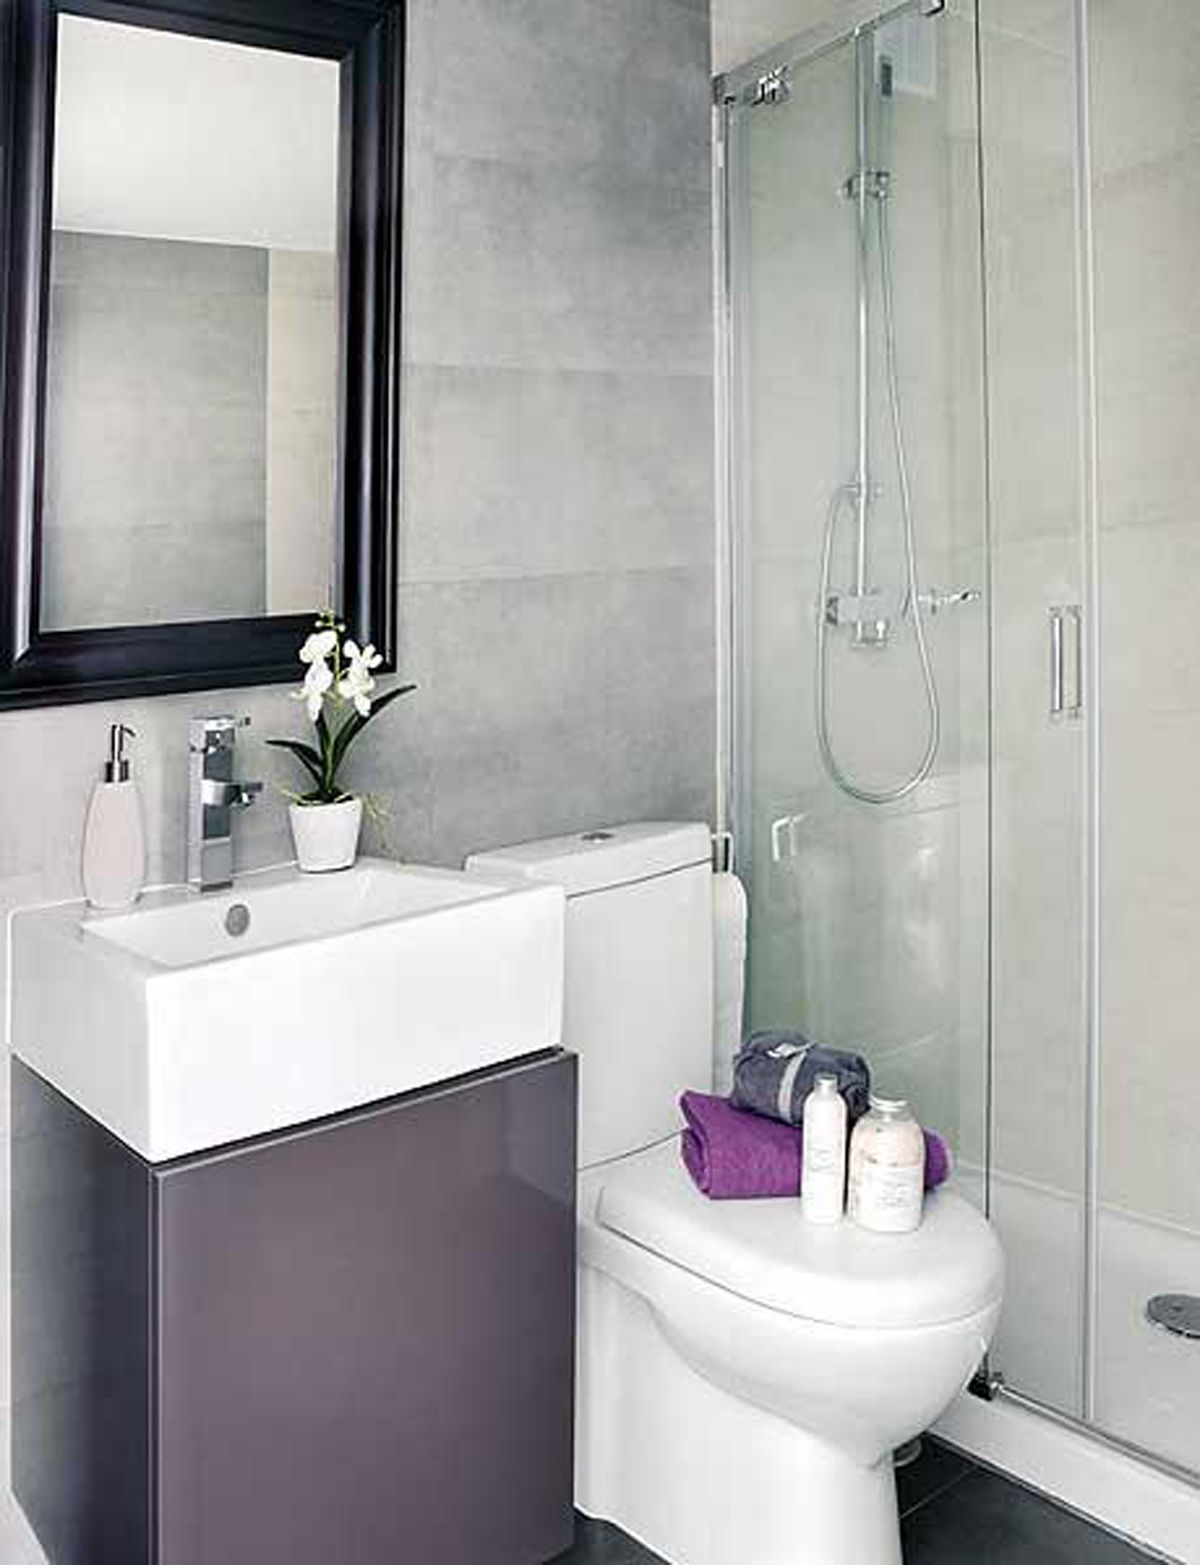 effective interior design small apartment astounding small space with white purple bathroom in interior designs for small apartments with wall mirror also - Small Bathrooms Design Ideas